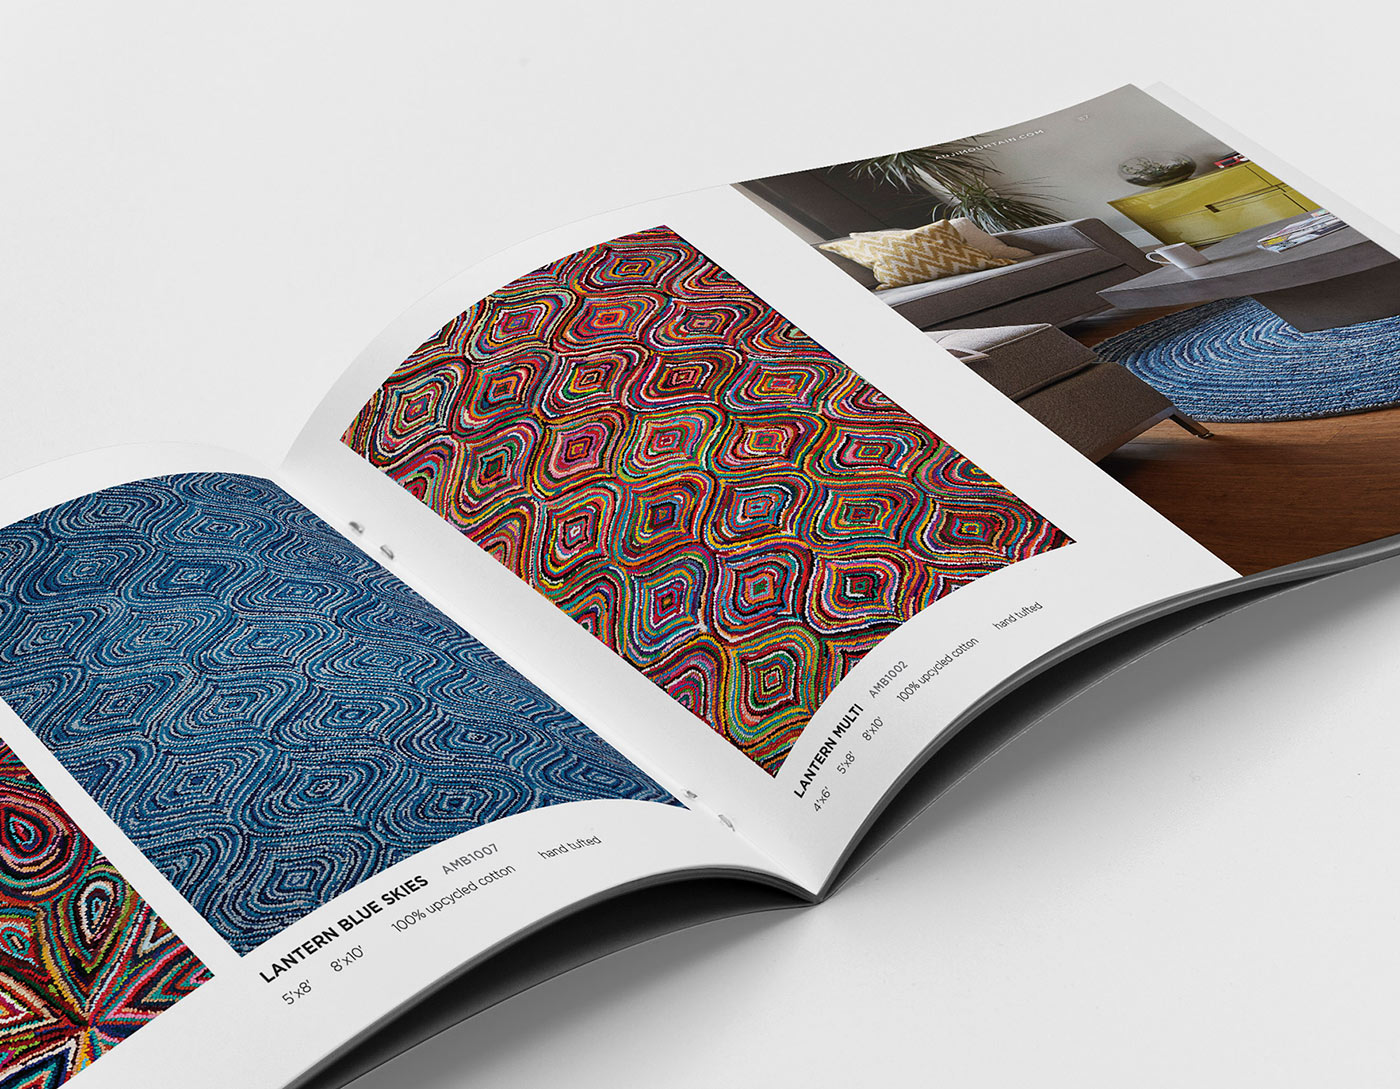 Sample spread from Anji Mountain product catalog